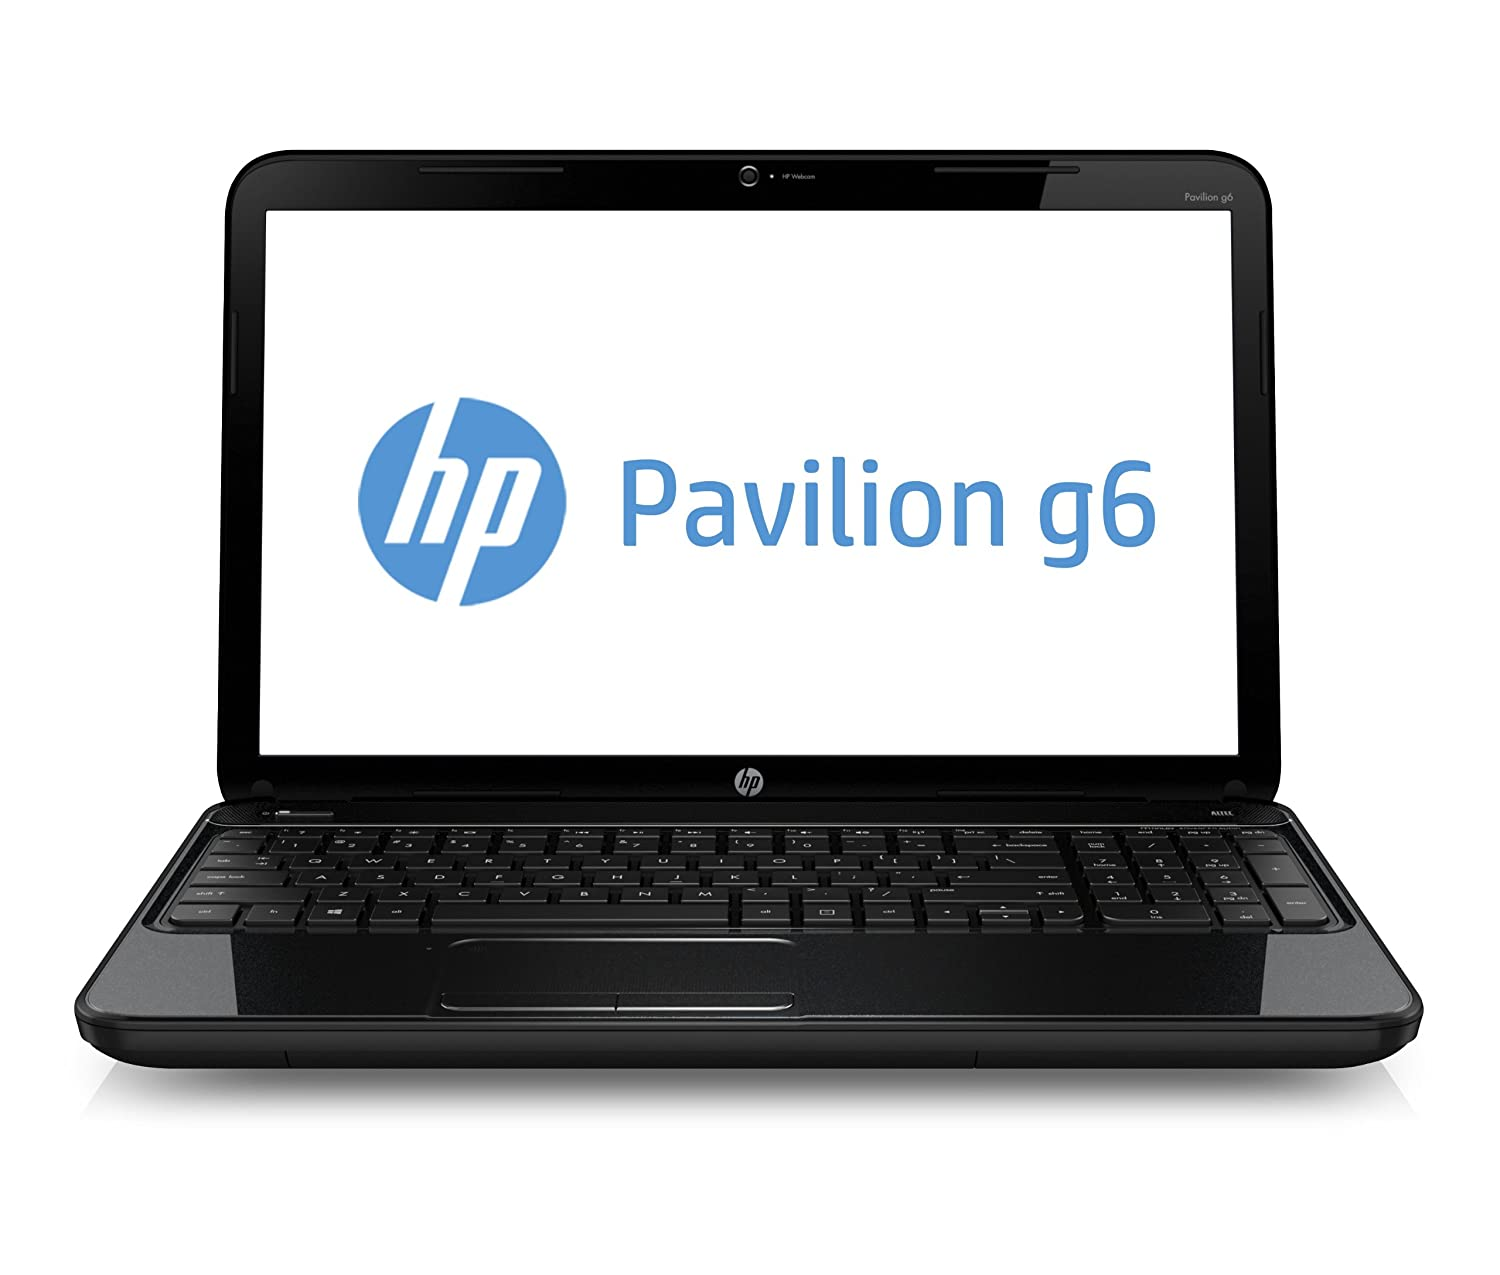 HP Pavilion G6-2252SA 15.6 inch Laptop - Black: Amazon.co.uk: Computers &  Accessories